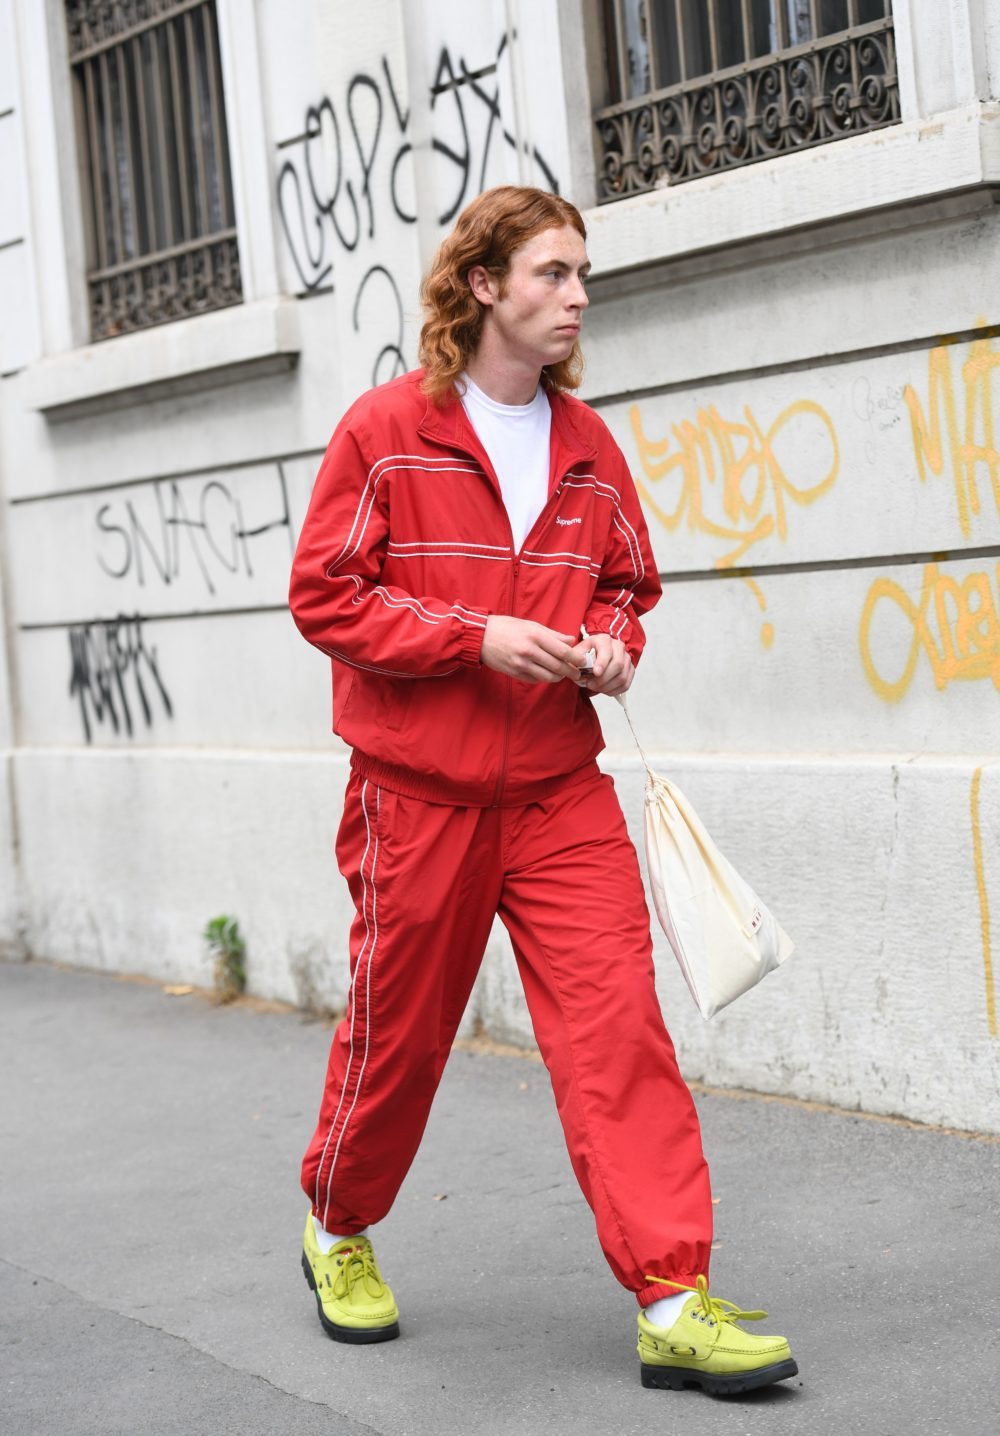 The brights are all right: a ginger goes for bold in a red track suit and neon geriatric-style shoes.